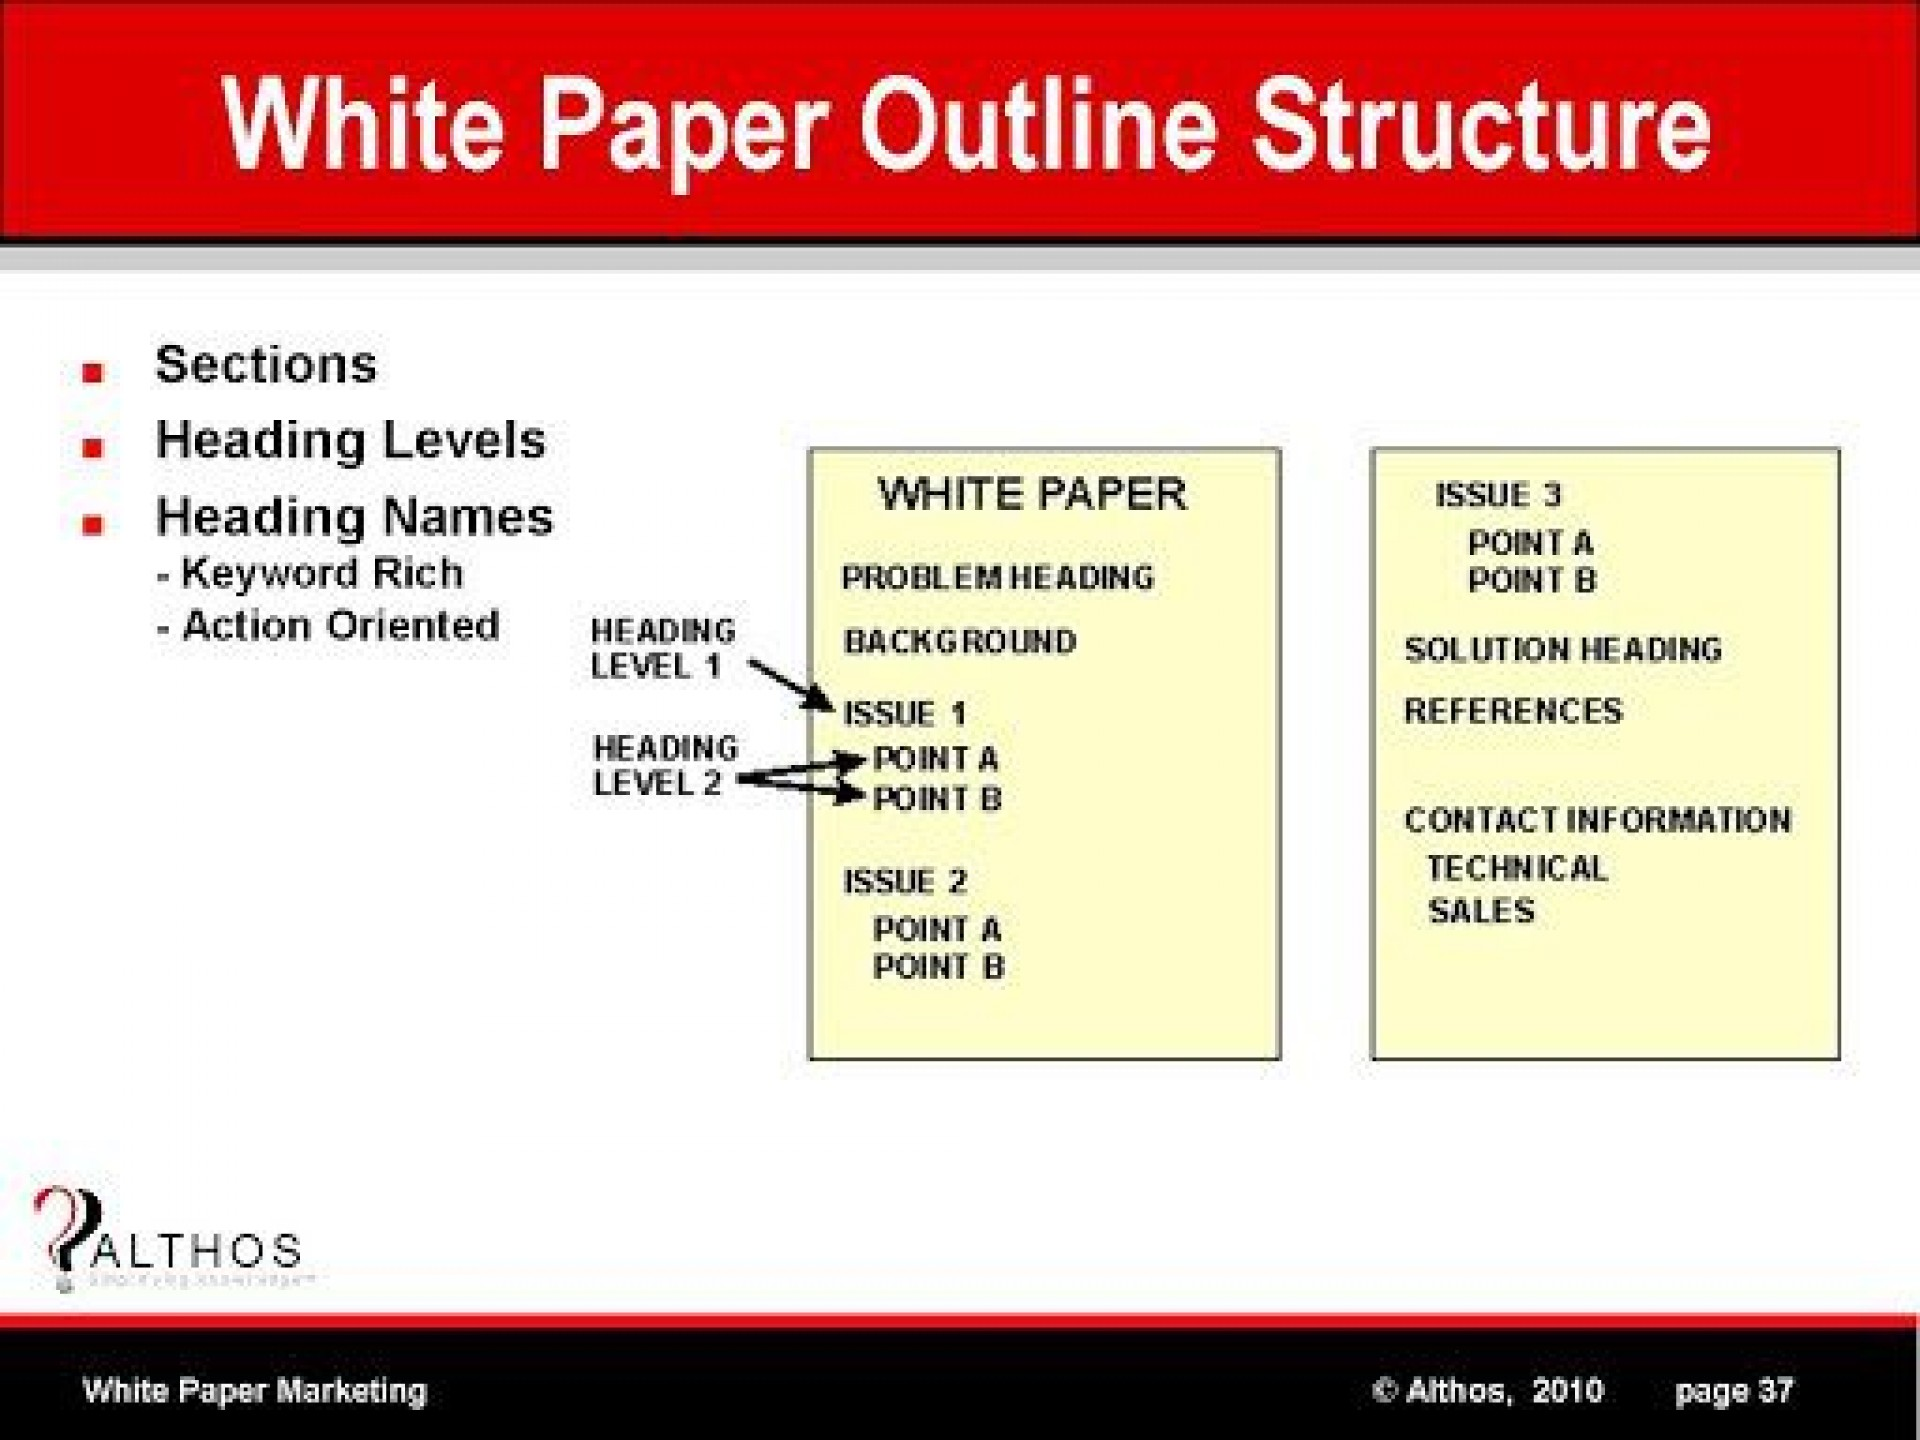 006 Fearsome White Paper Outline Template High Definition  Free1920